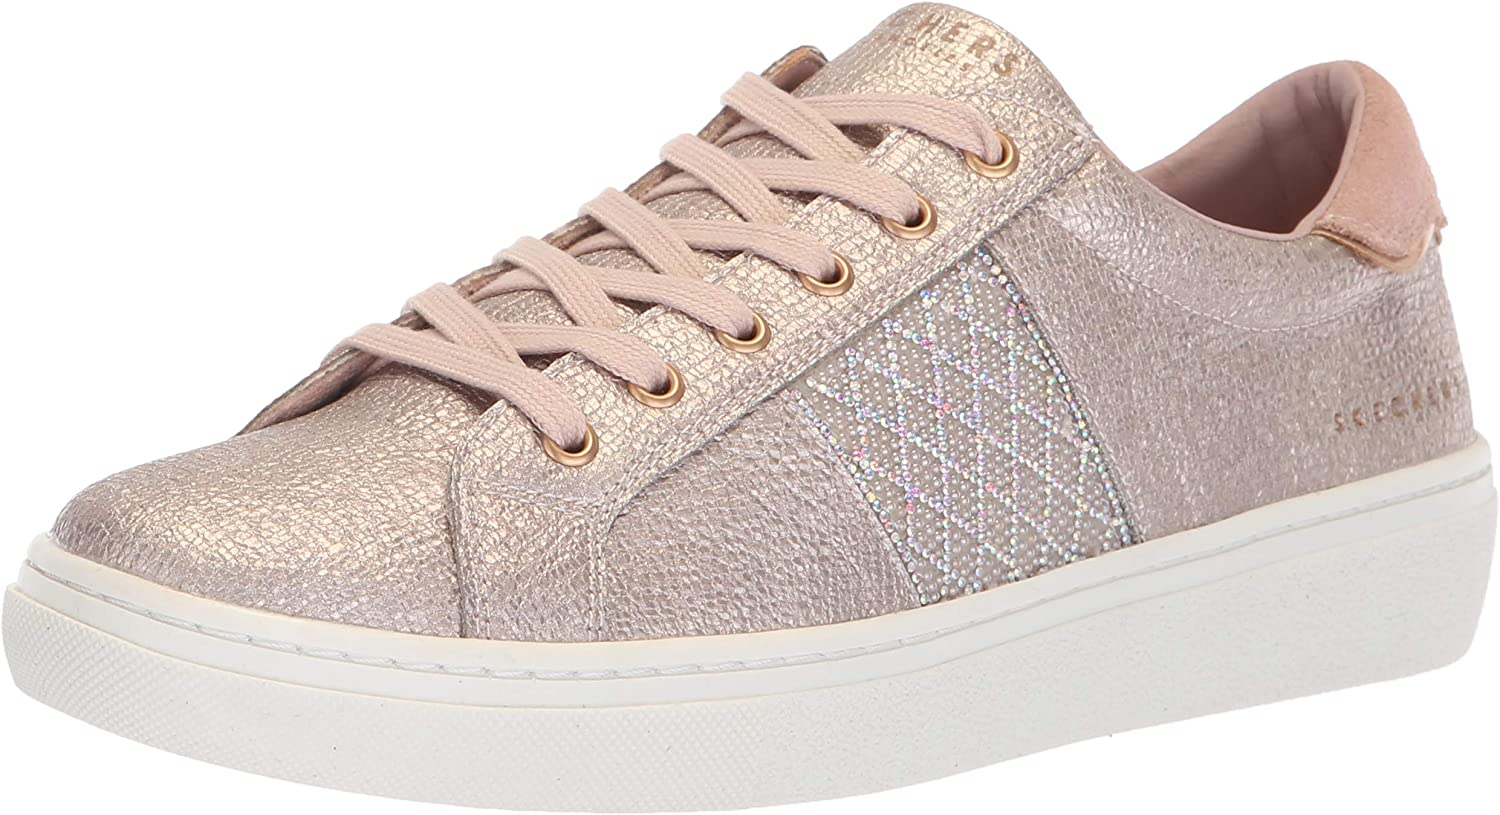 Skechers Womens goldie - Glitzy Mitzy. Quilted Rhinestone Qtr Trim Metallic Lace Up. Sneaker